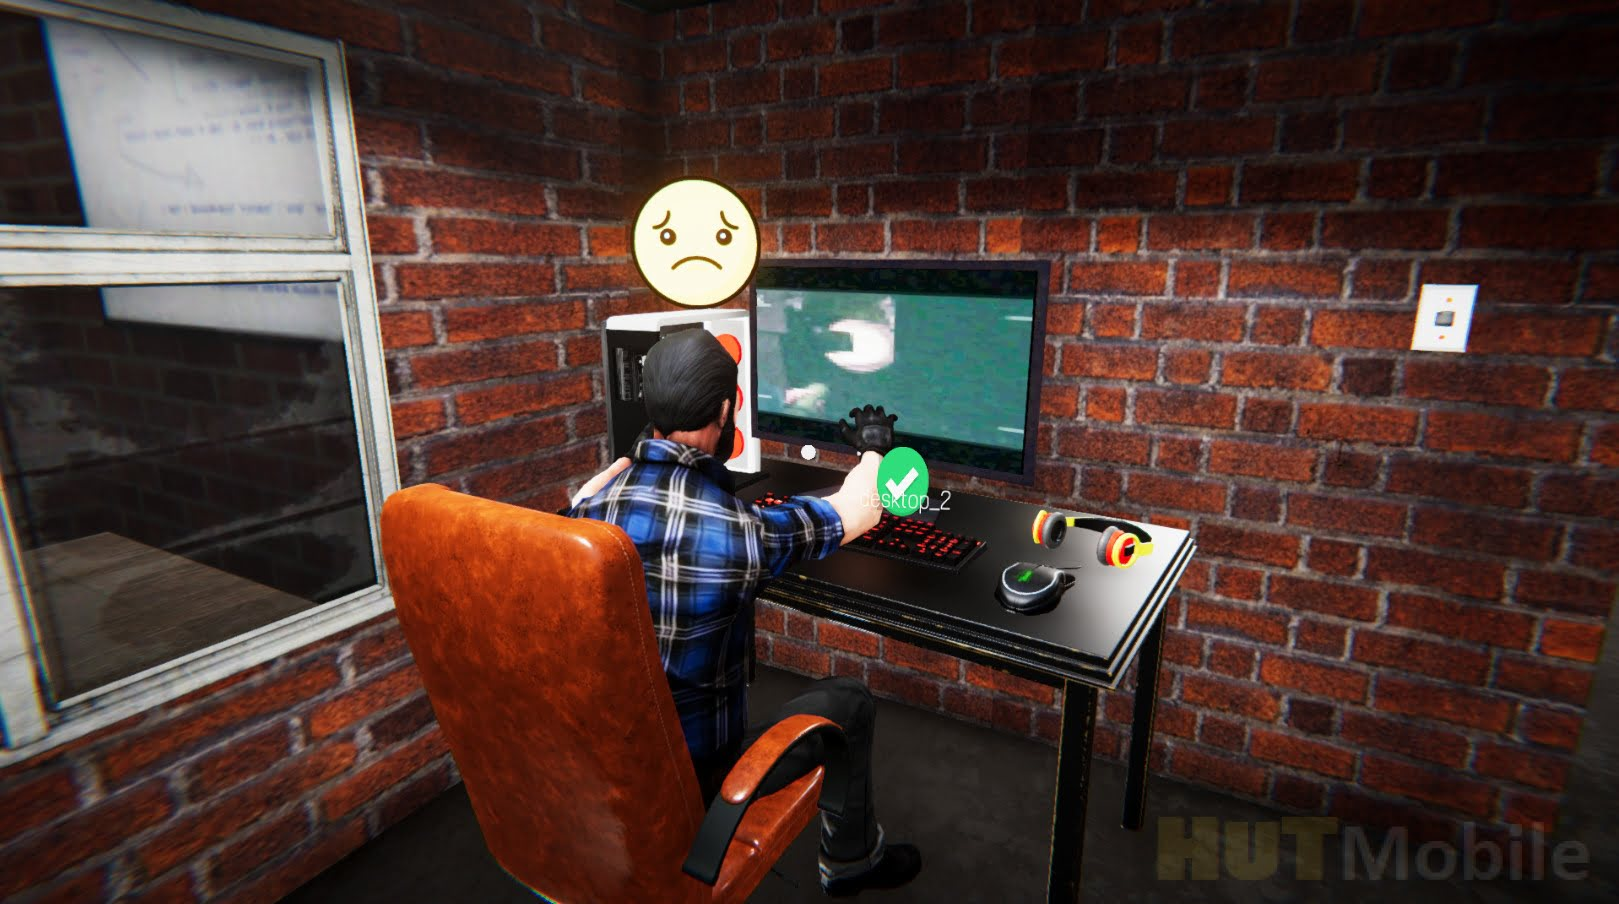 Internet Cafe Simulator Game System Requirements